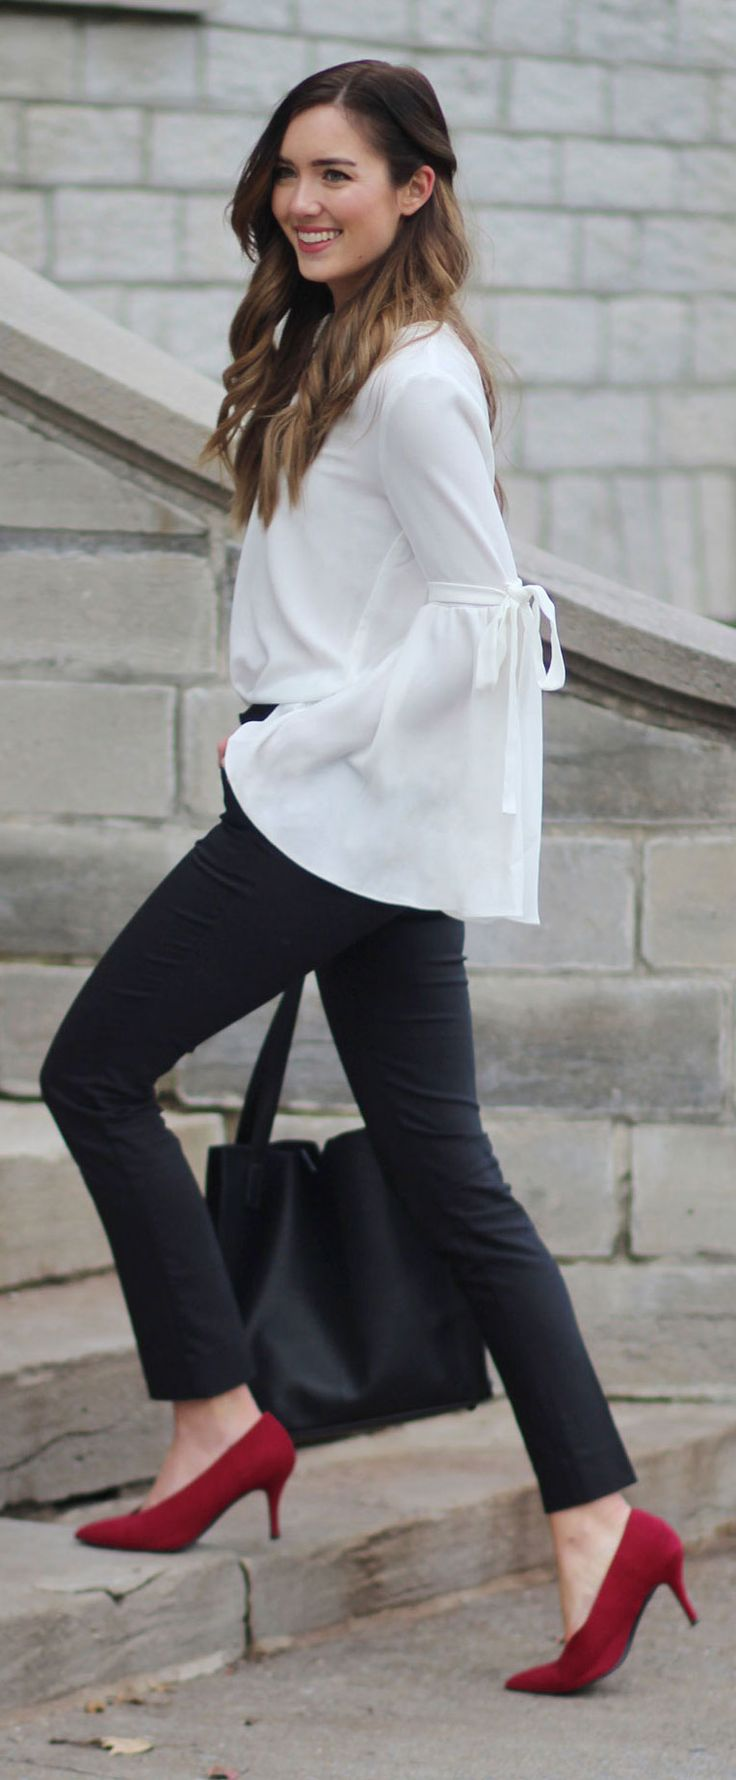 Perfect black trousers ON SALE! Flattering, comfortable and affordable! #fashion #fashionblog #fashionblogger #blog #blogger #trousers #blackpants #style #outfit Marie's Bazaar